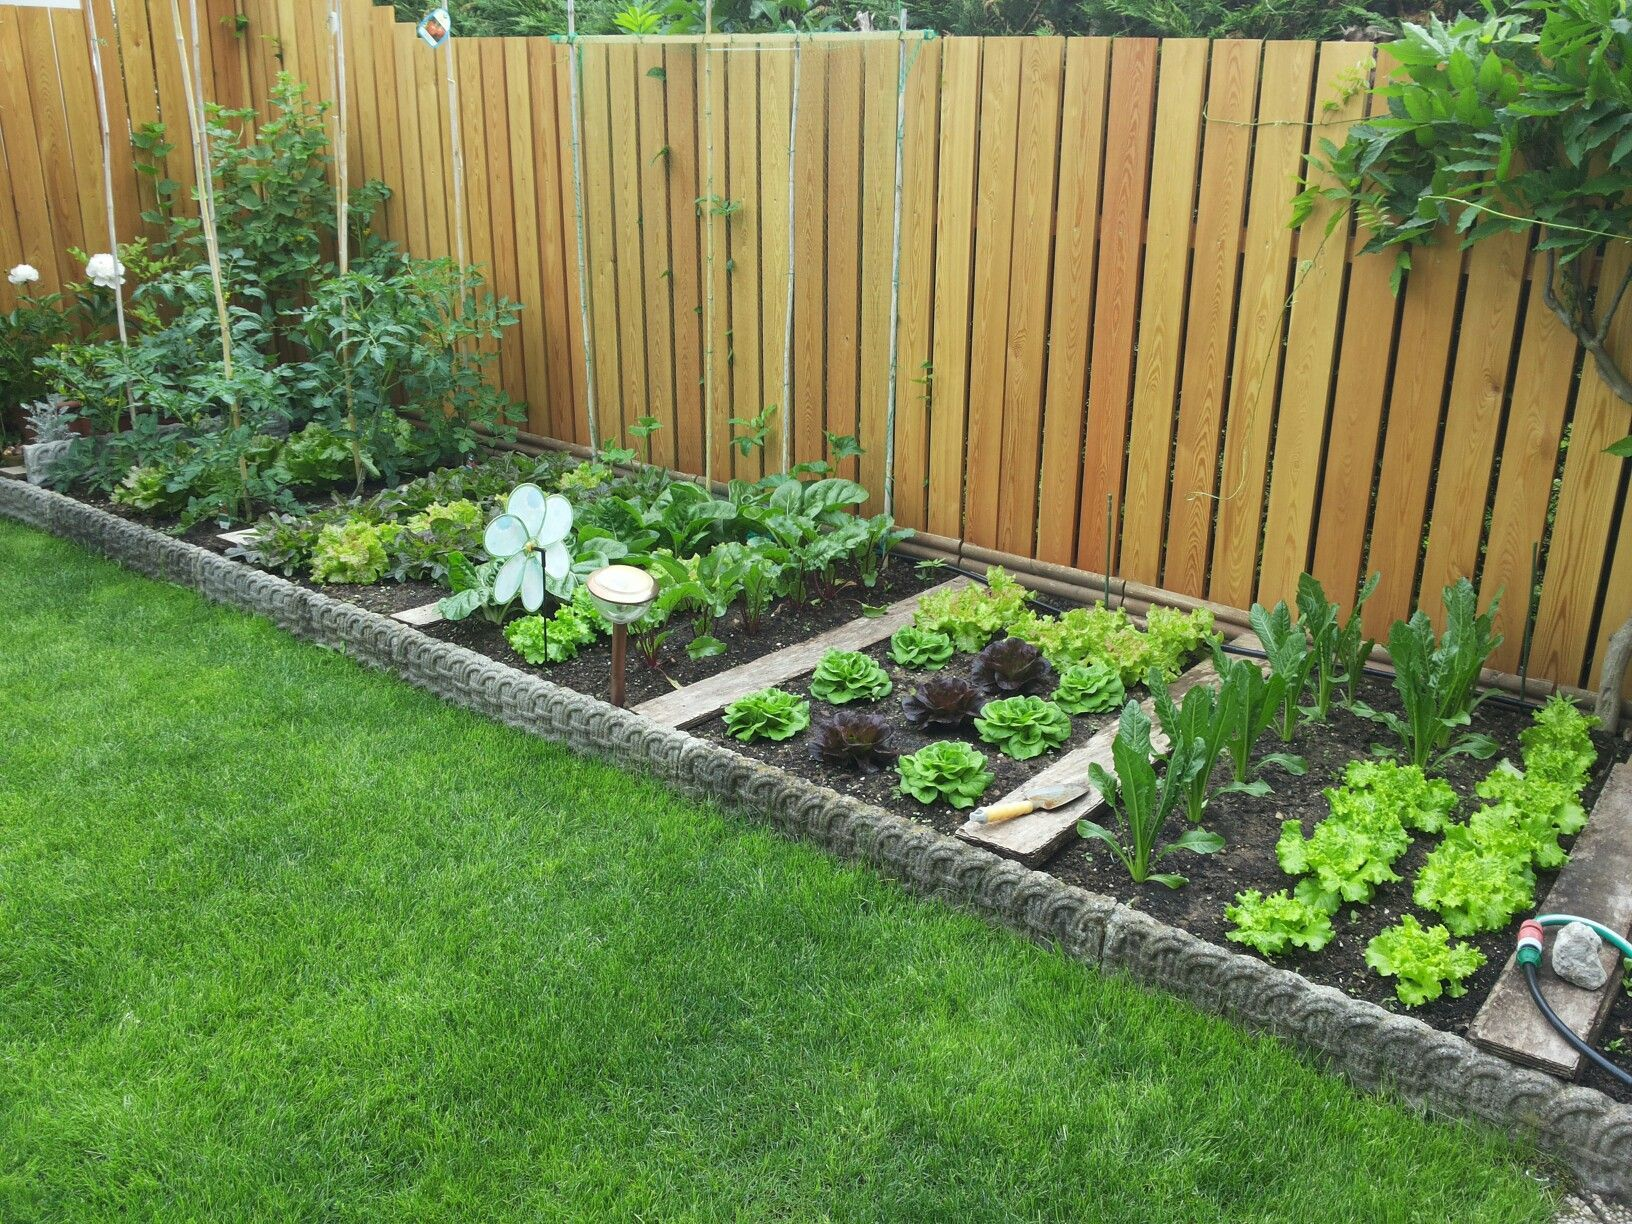 Information You Should Know About Organic Vegetable Gardening